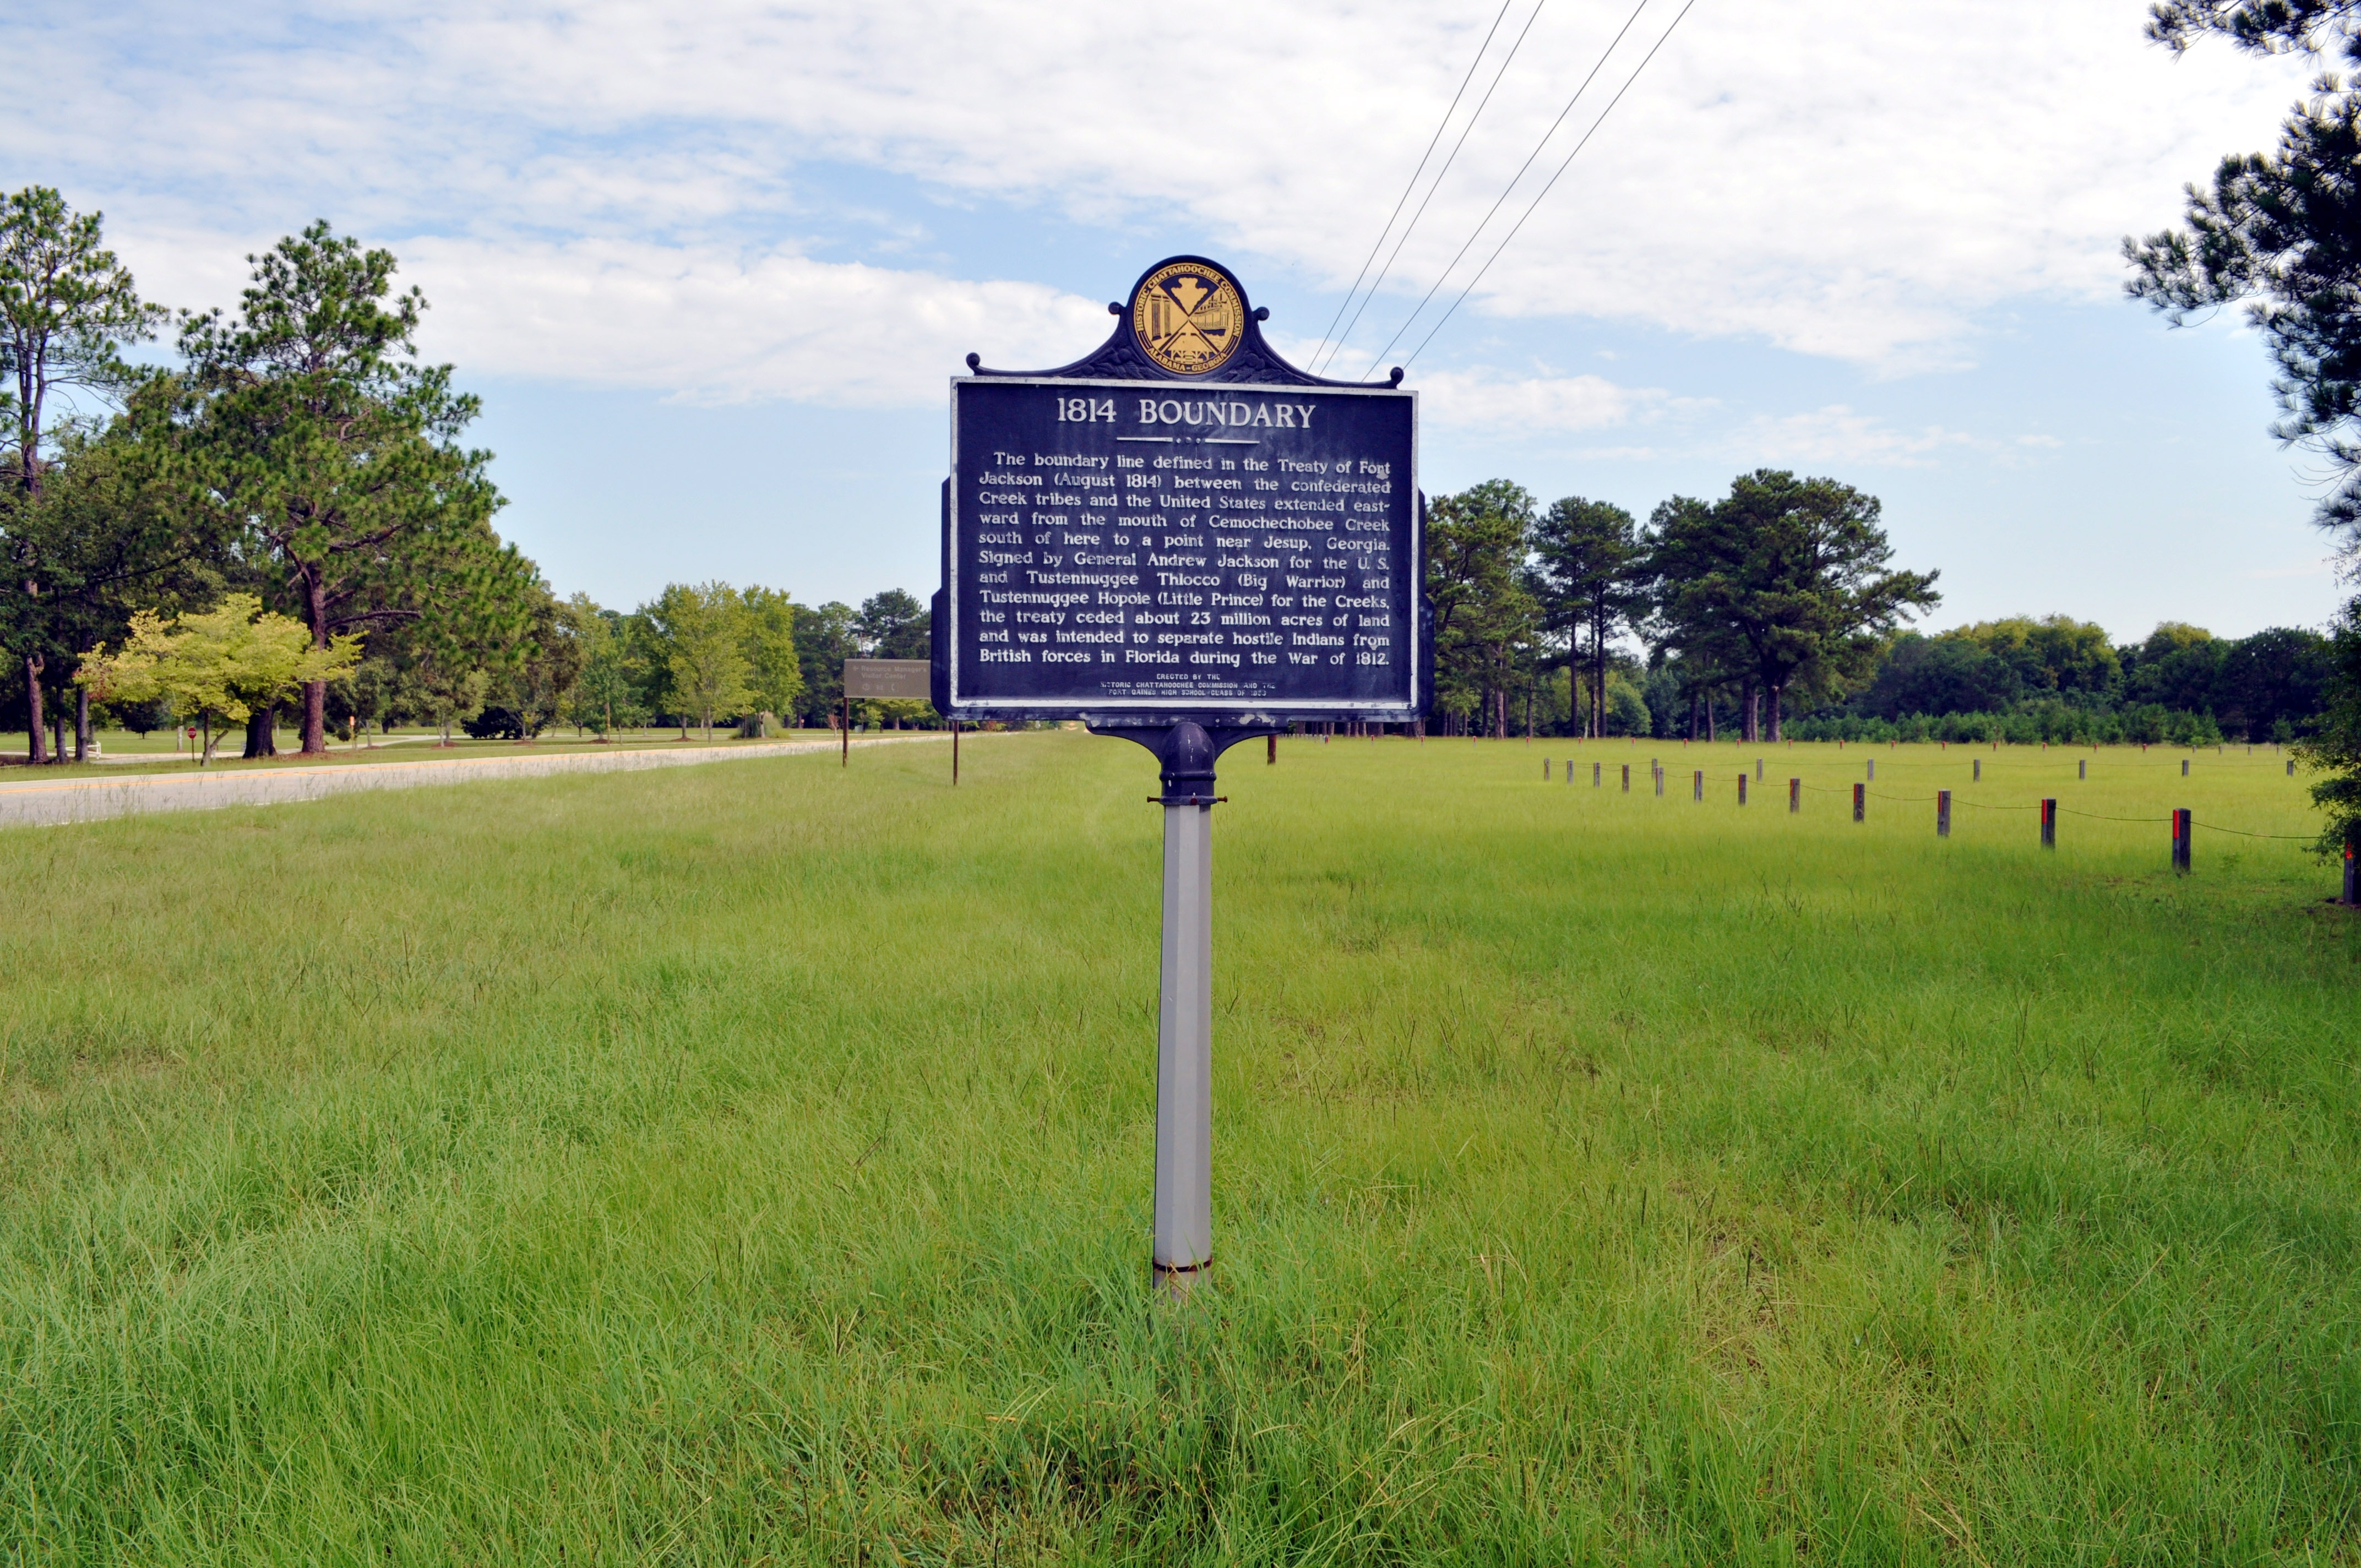 1814 Boundary / Founding of Fort Gaines Marker